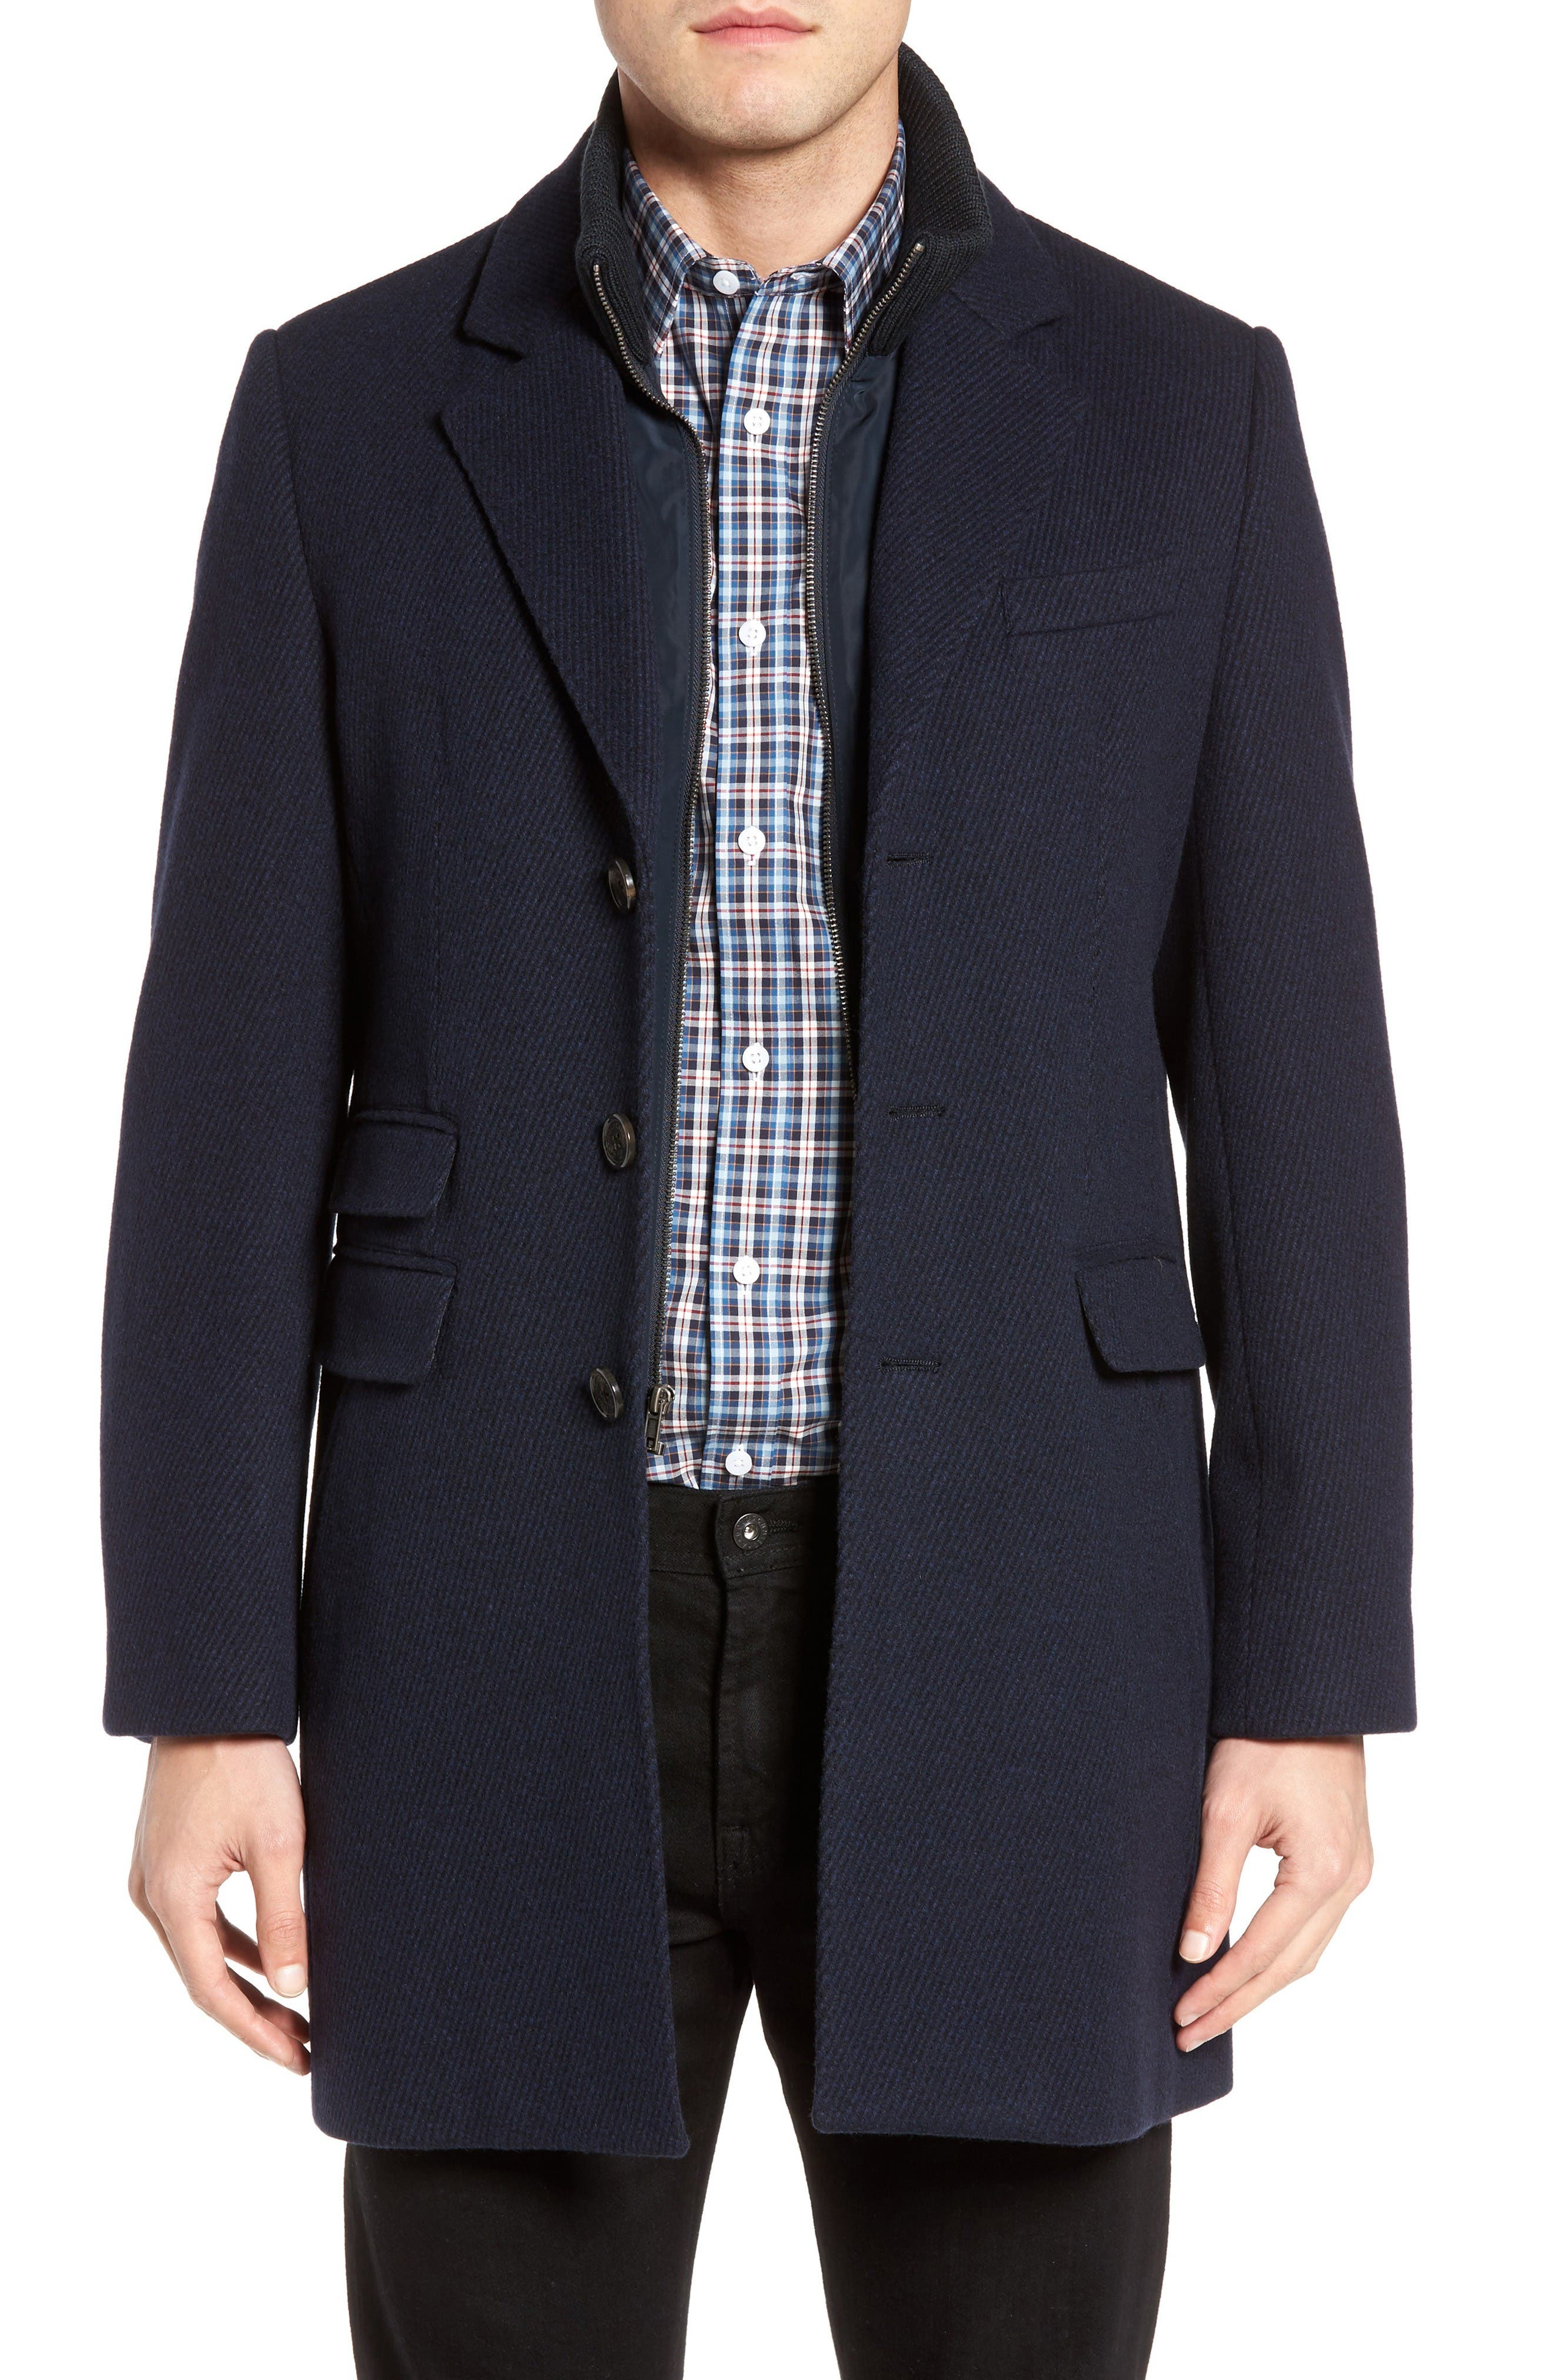 Cardinal of Canada LeClair Wool & Cashmere Topcoat